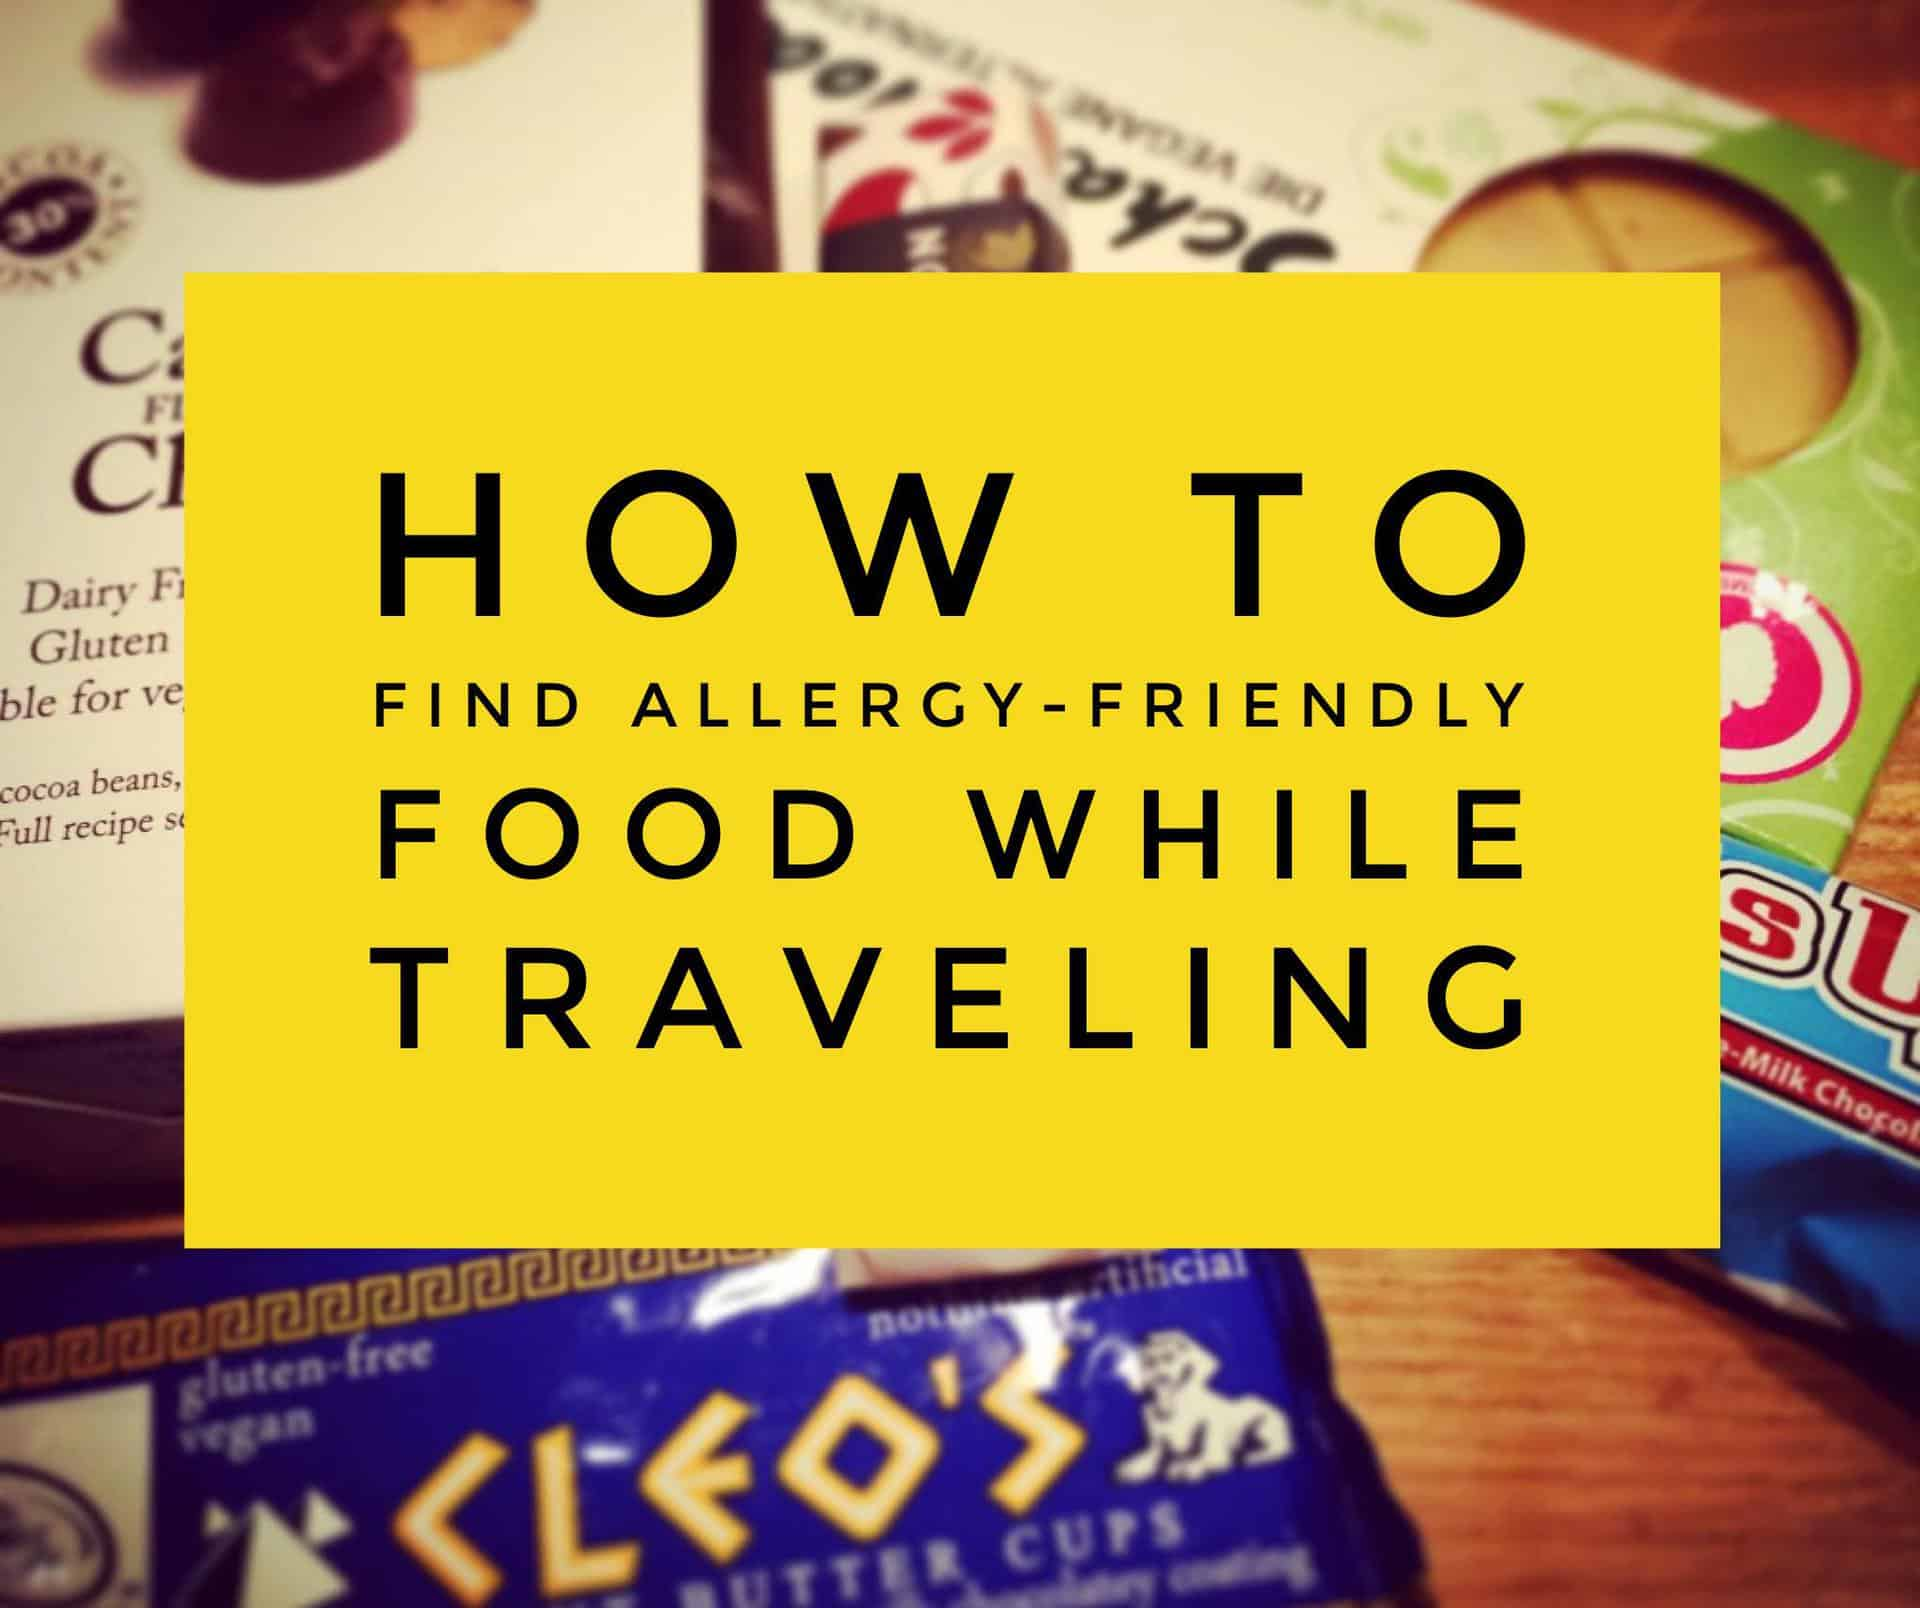 How to find allergy-friendly food while traveling